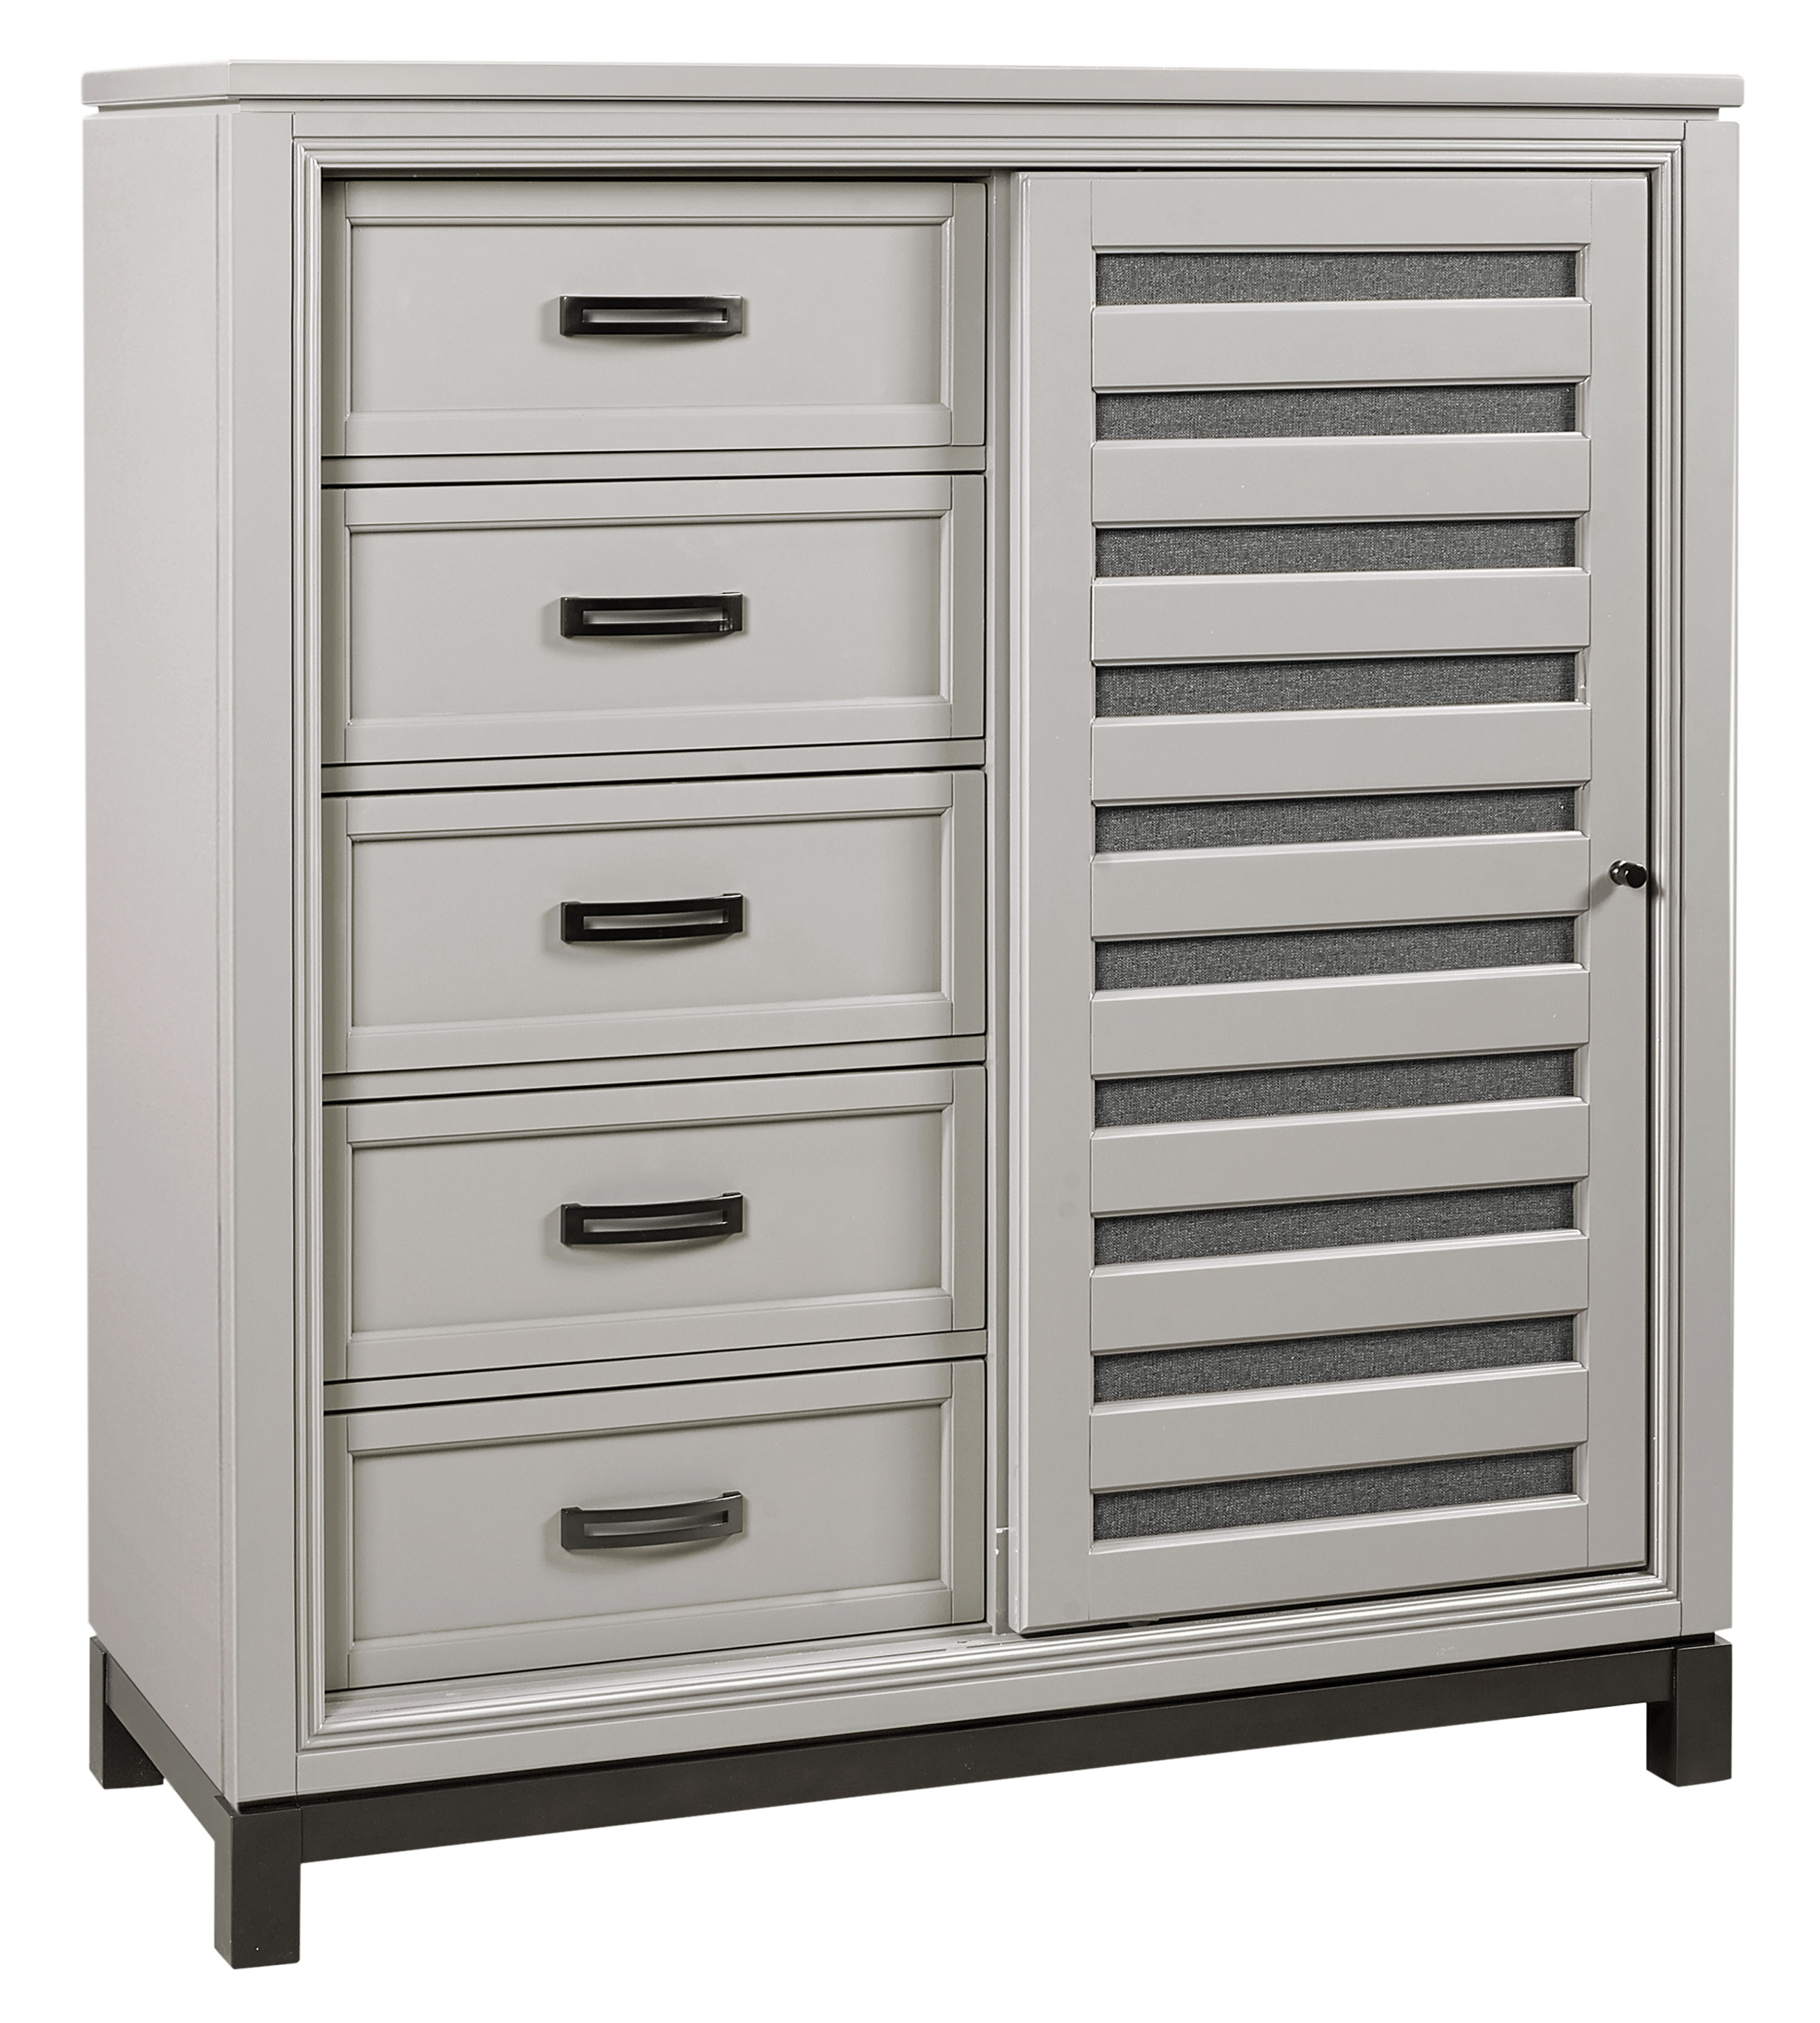 Hyde Park Sliding Door Chest  by Aspenhome at Darvin Furniture